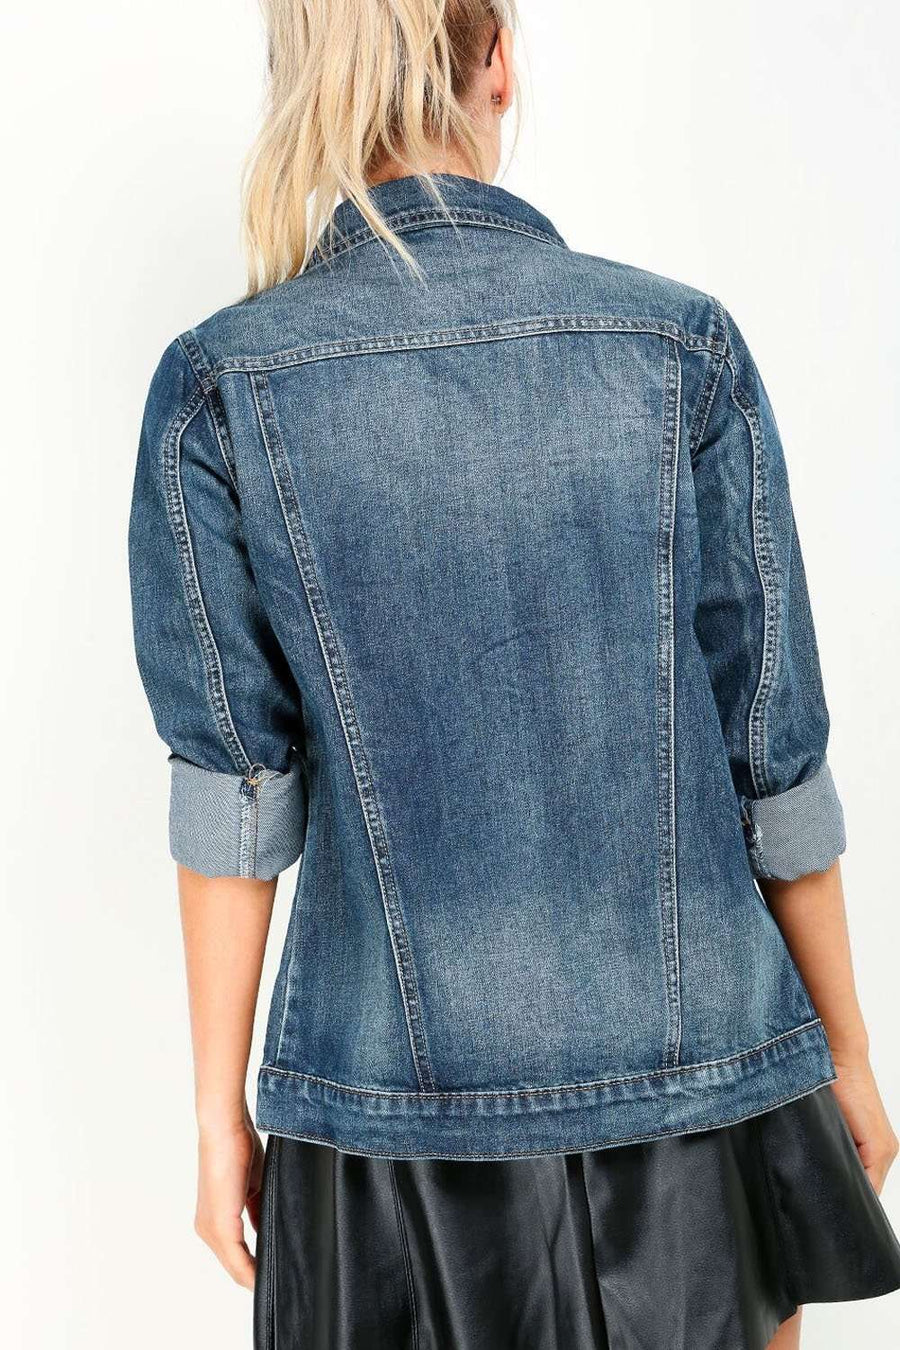 Jyllina Oversized Mid Wash Denim Jacket - bejealous-com